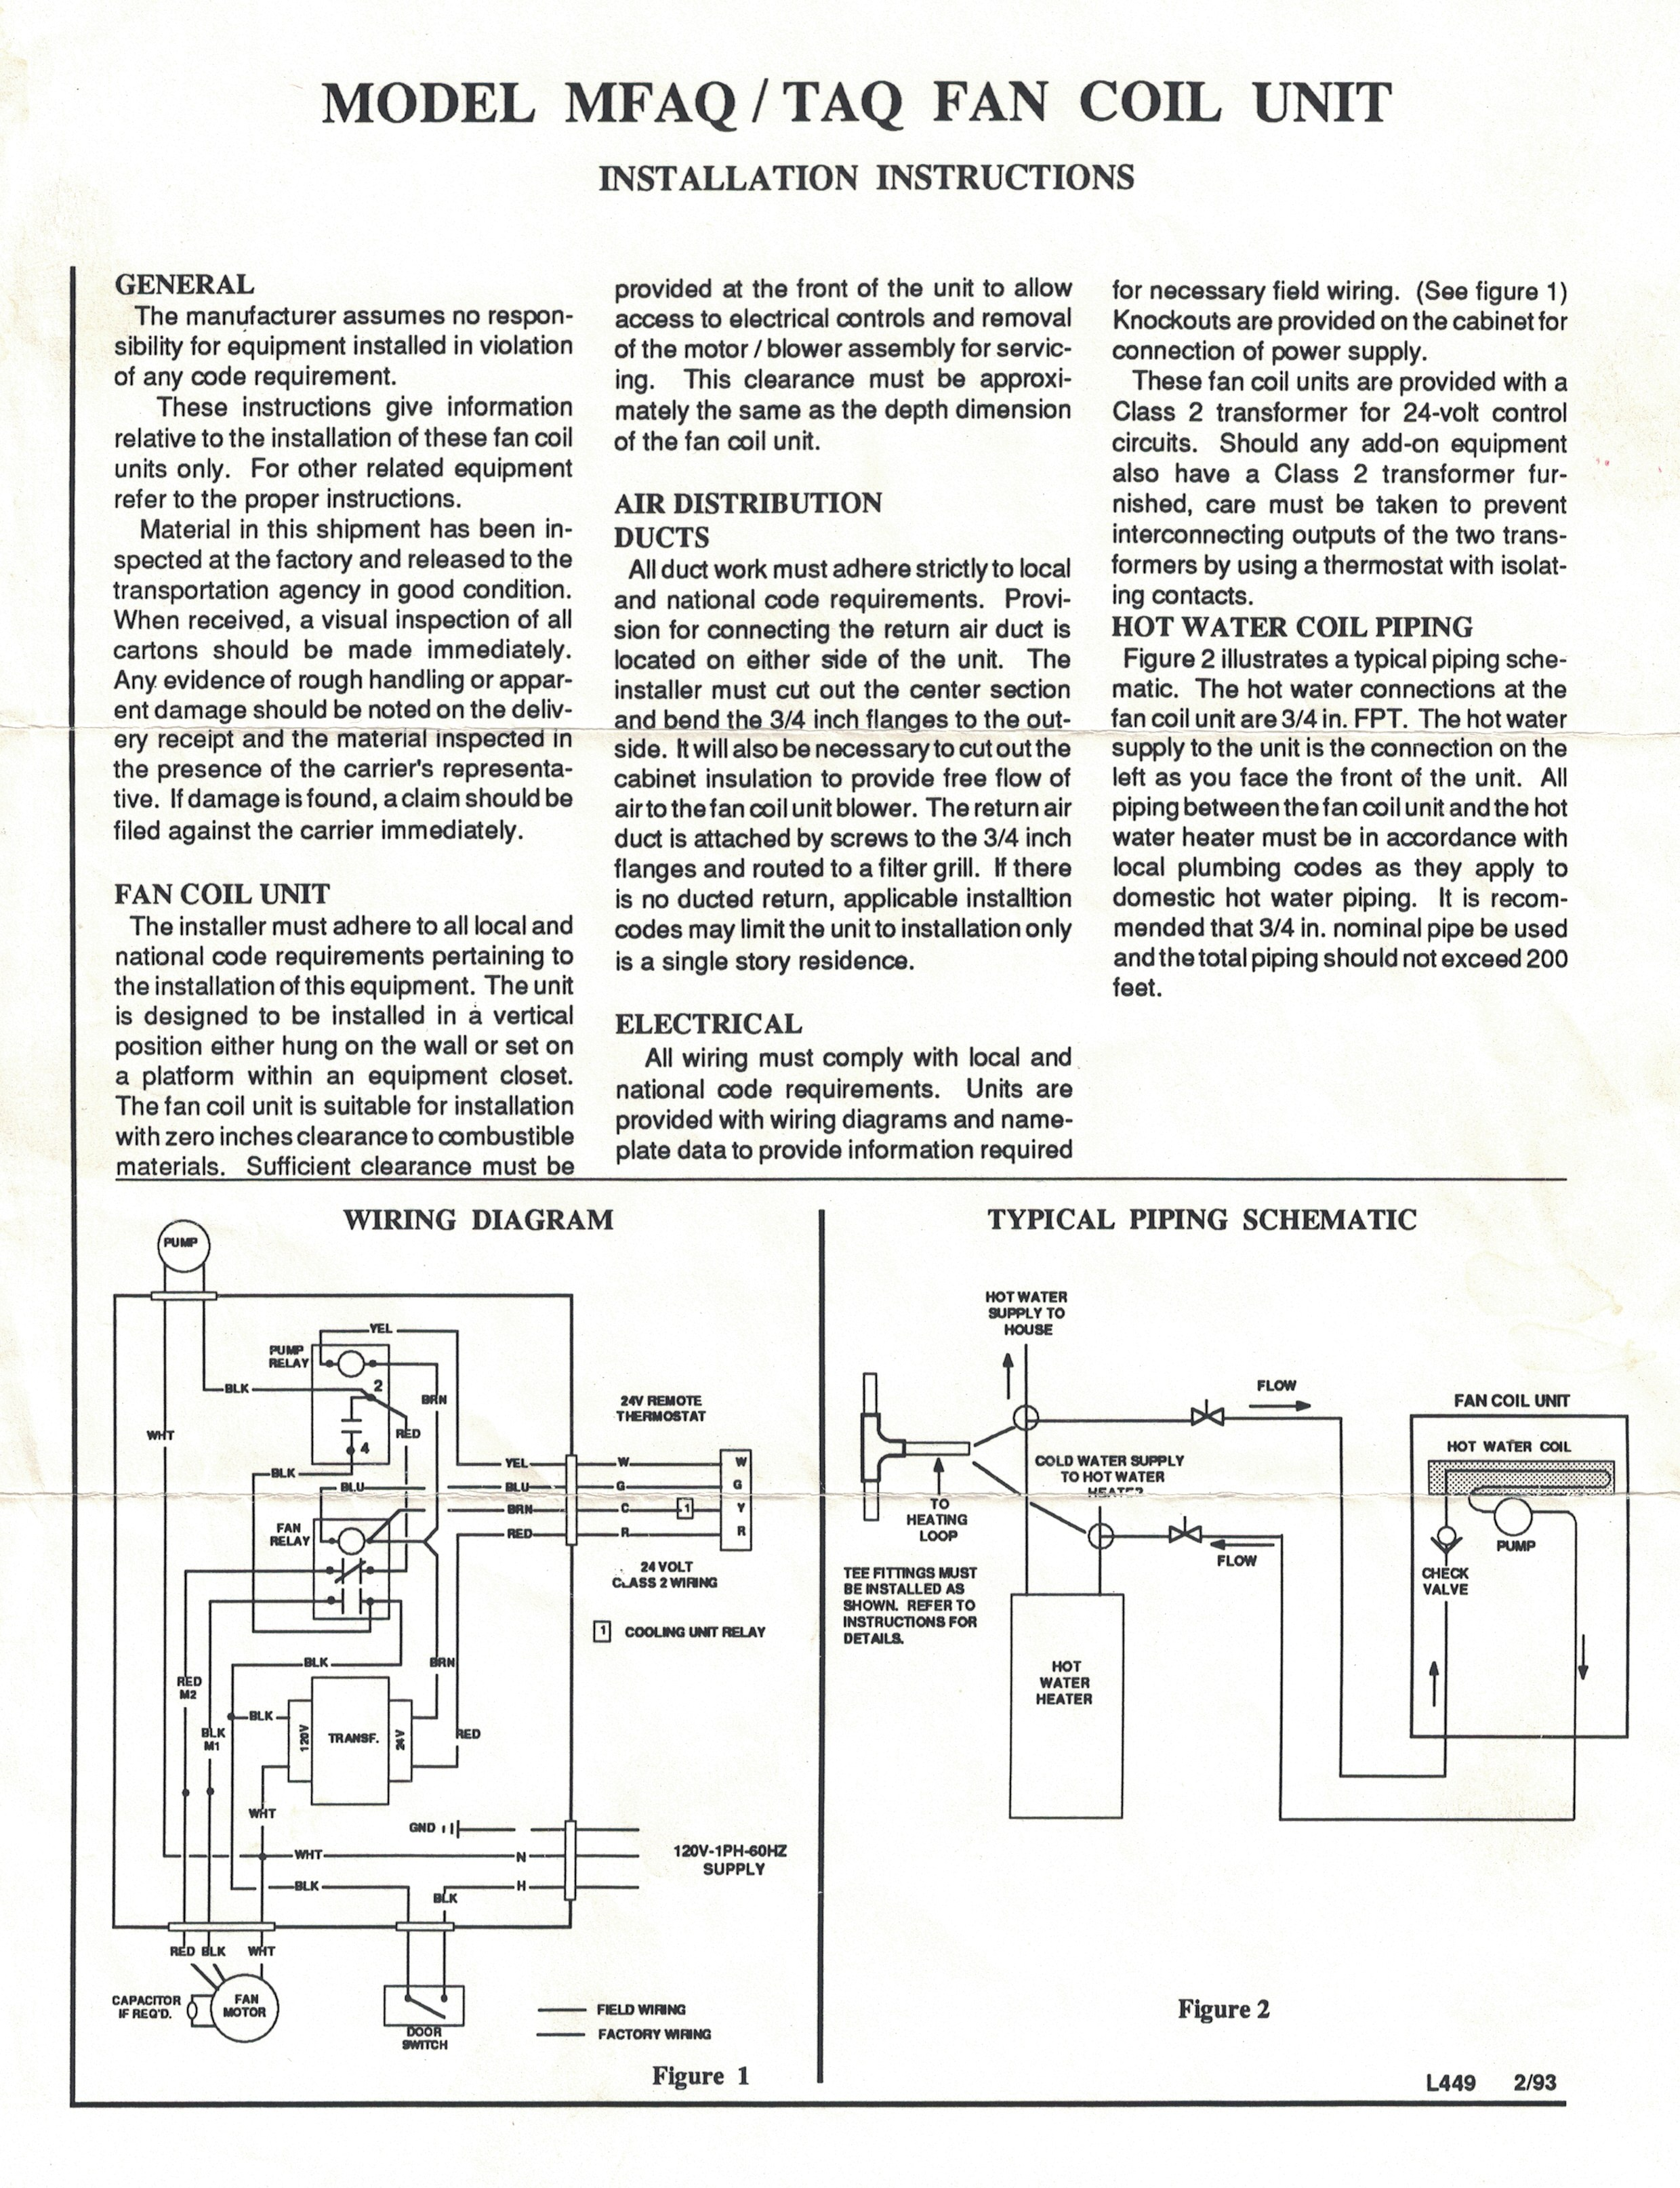 Wiring Diagram For Thermostats : wiring, diagram, thermostats, Connecting, Common, Thermostat, Handler, Improvement, Stack, Exchange